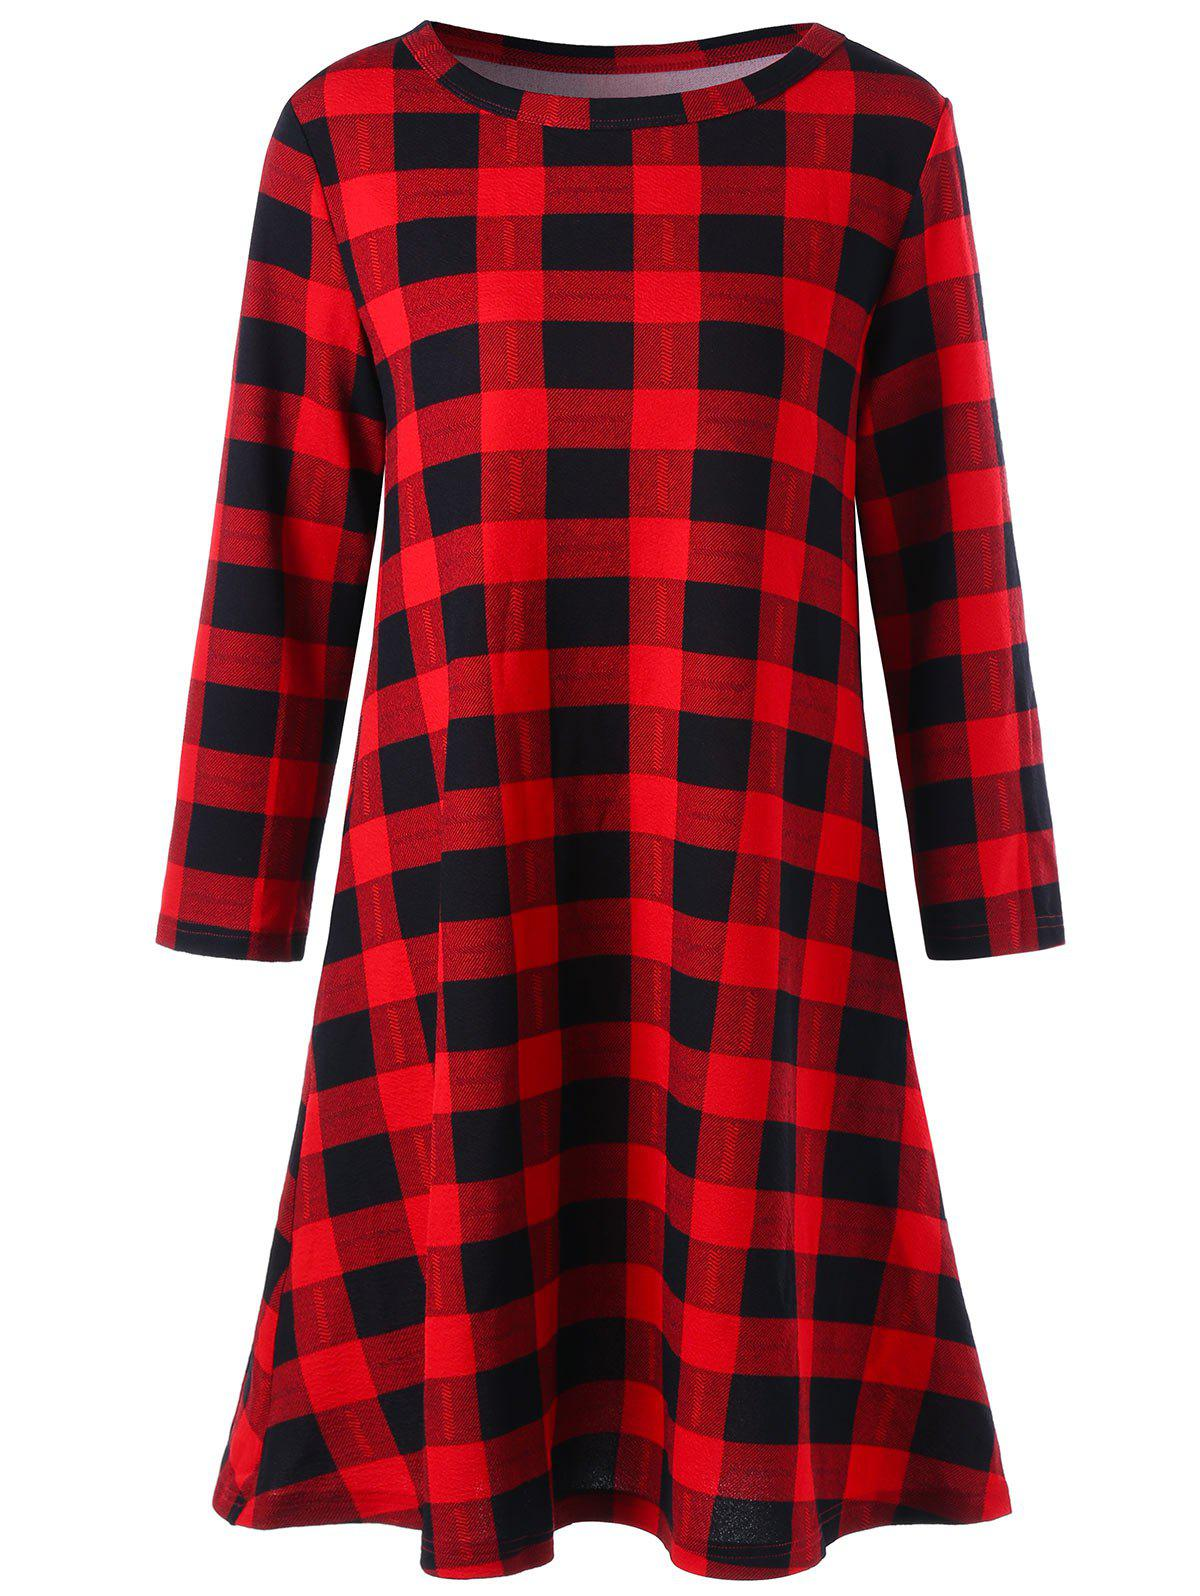 Shop Christmas Plaid Swing Mini Dress